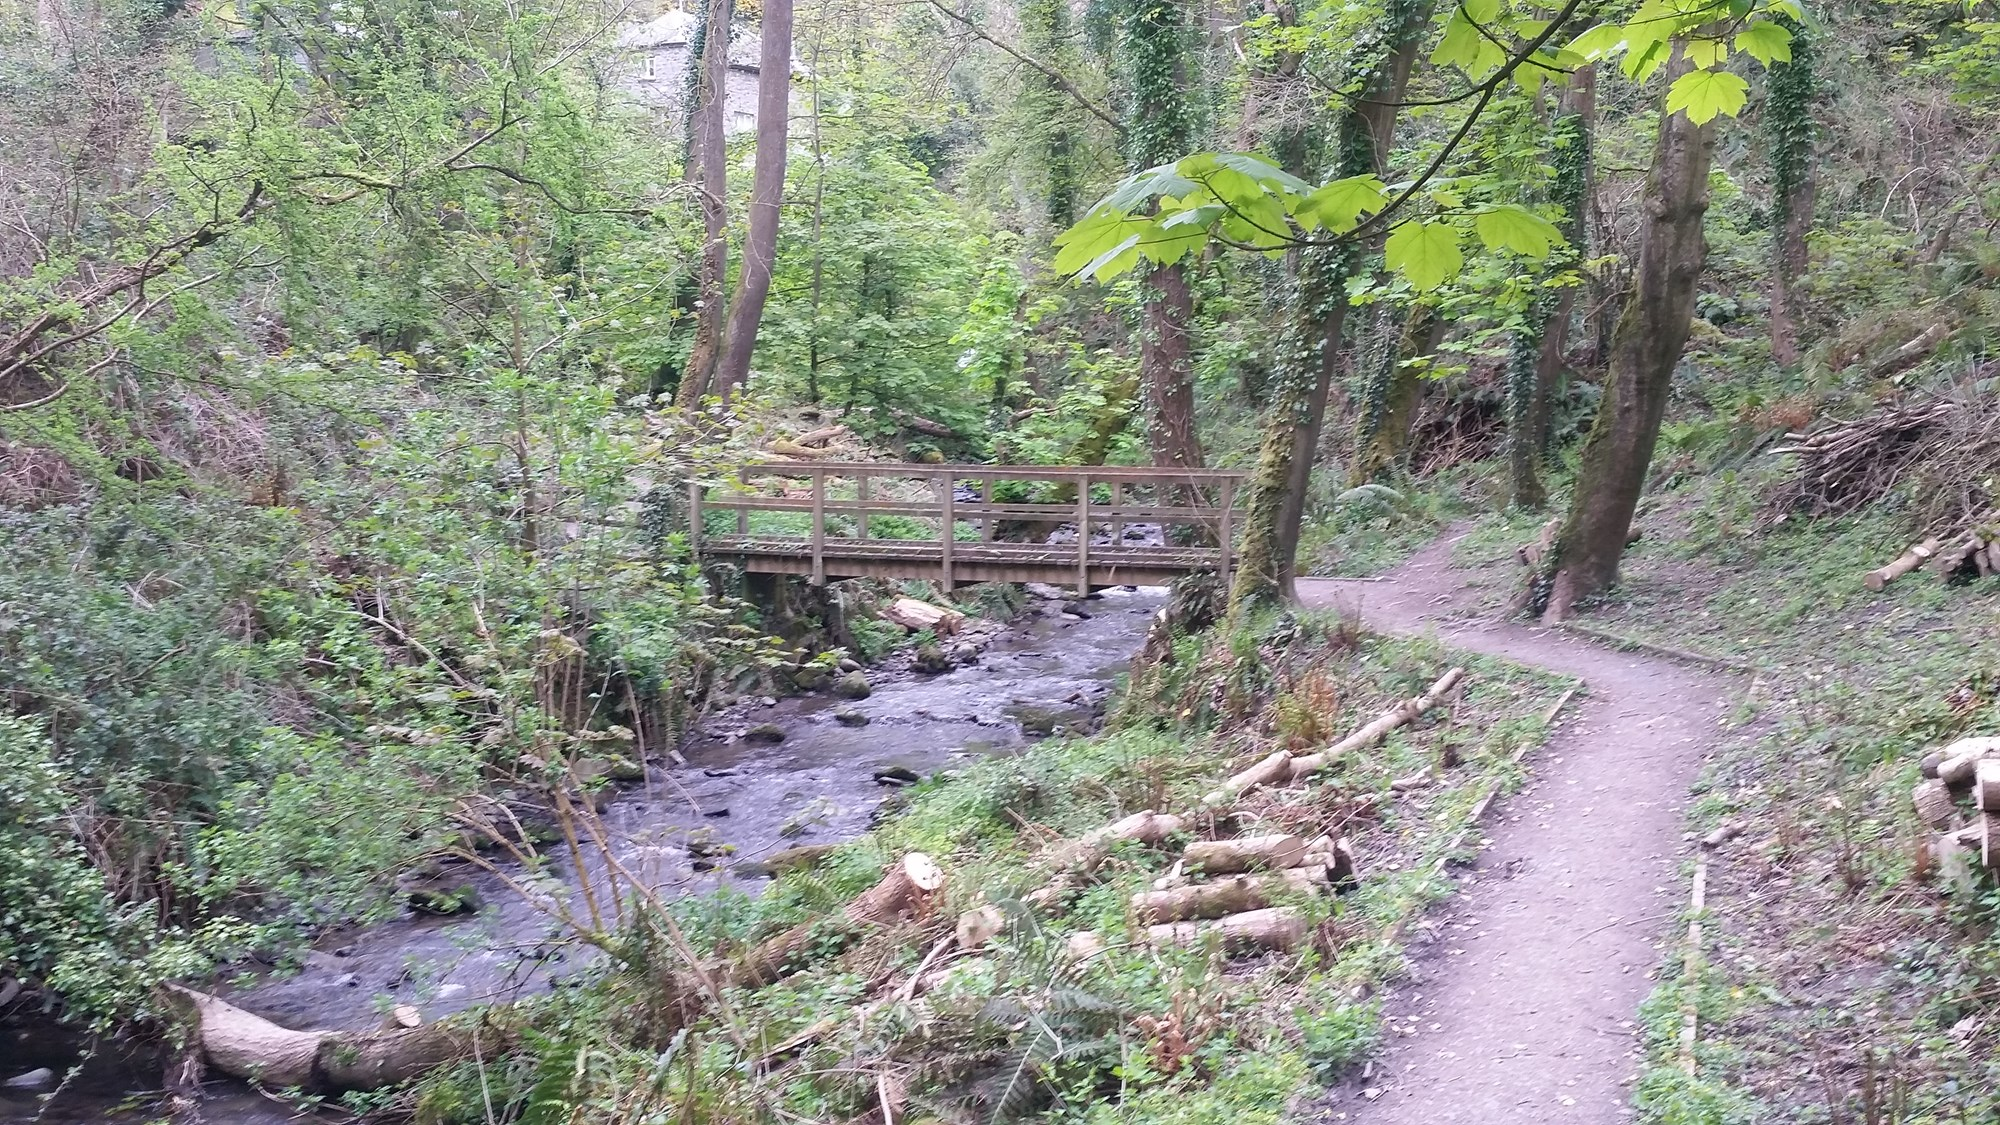 Woodlands at Penbryn